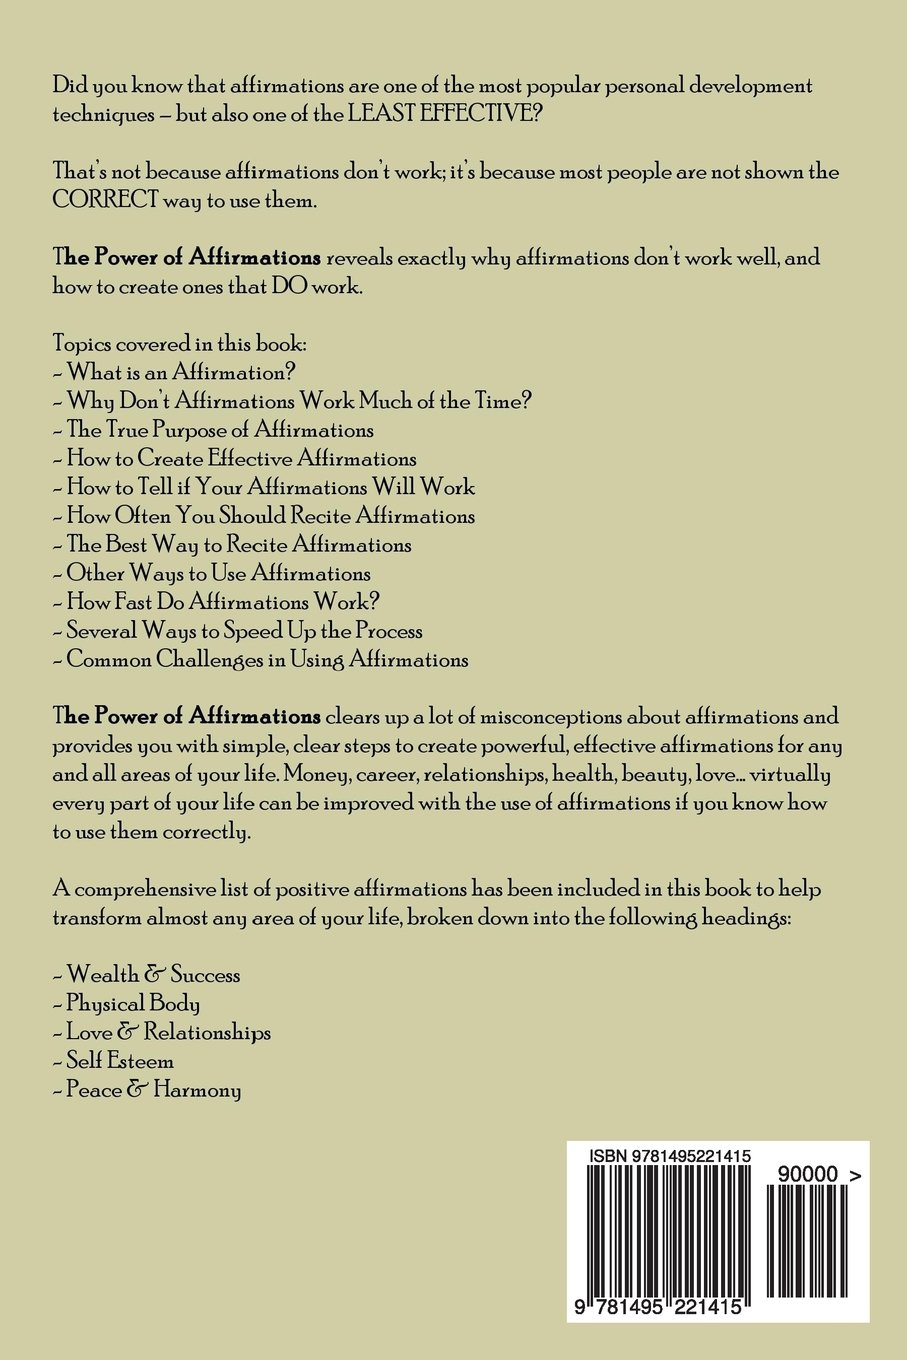 The power of affirmations 1 000 positive affirmations law of the power of affirmations 1 000 positive affirmations law of attraction in action volume 2 louise stapely 9781495221415 amazon books thecheapjerseys Gallery